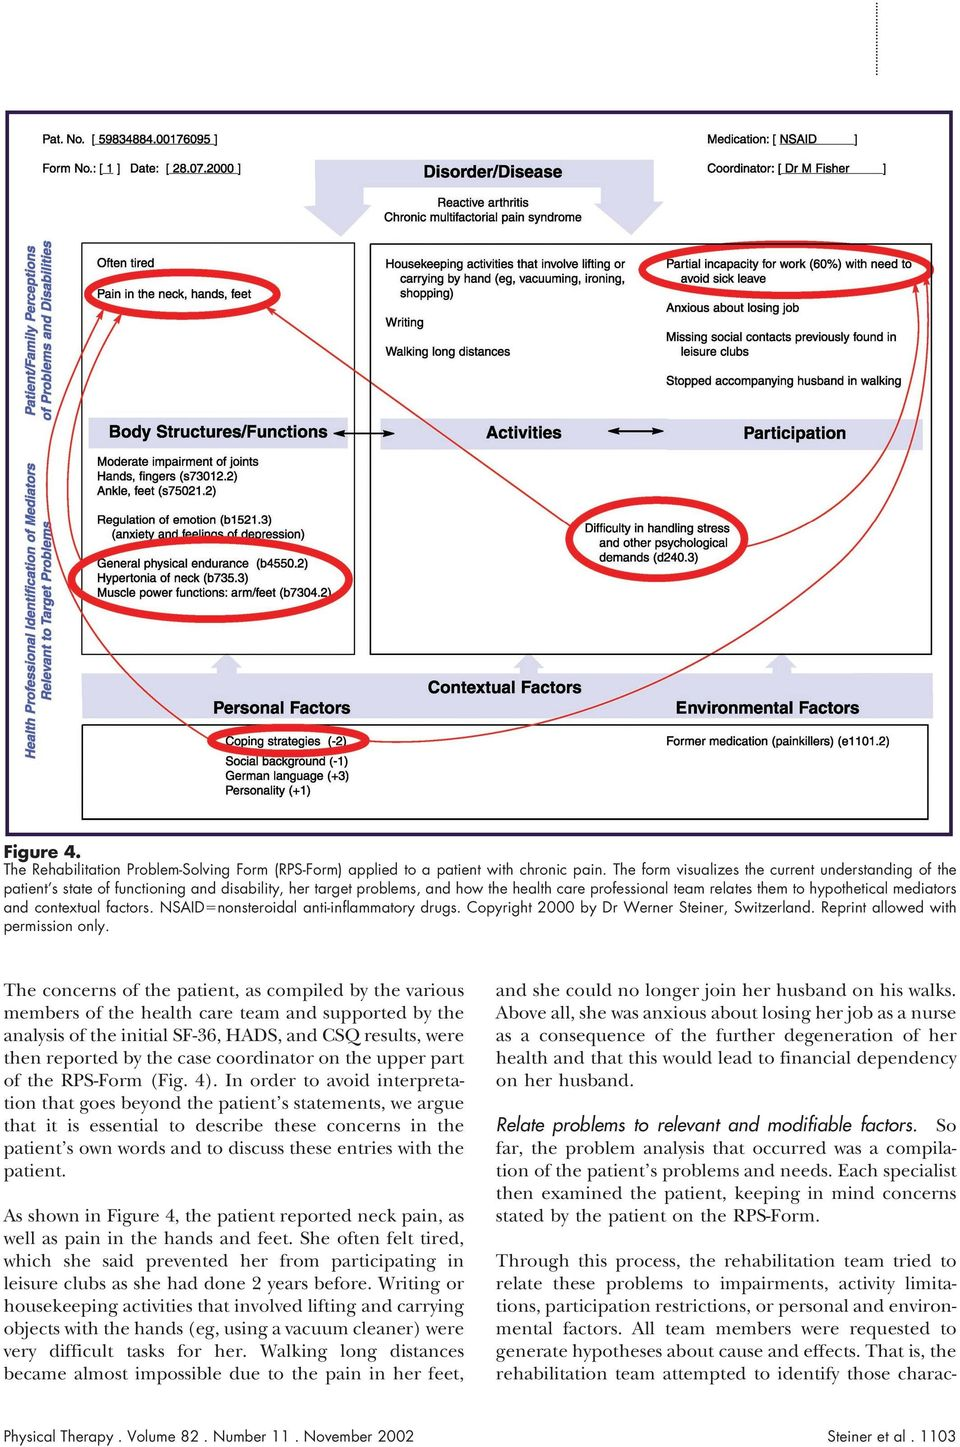 mediators and contextual factors. NSAID nonsteroidal anti-inflammatory drugs. Copyright 2000 by Dr Werner Steiner, Switzerland. Reprint allowed with permission only.